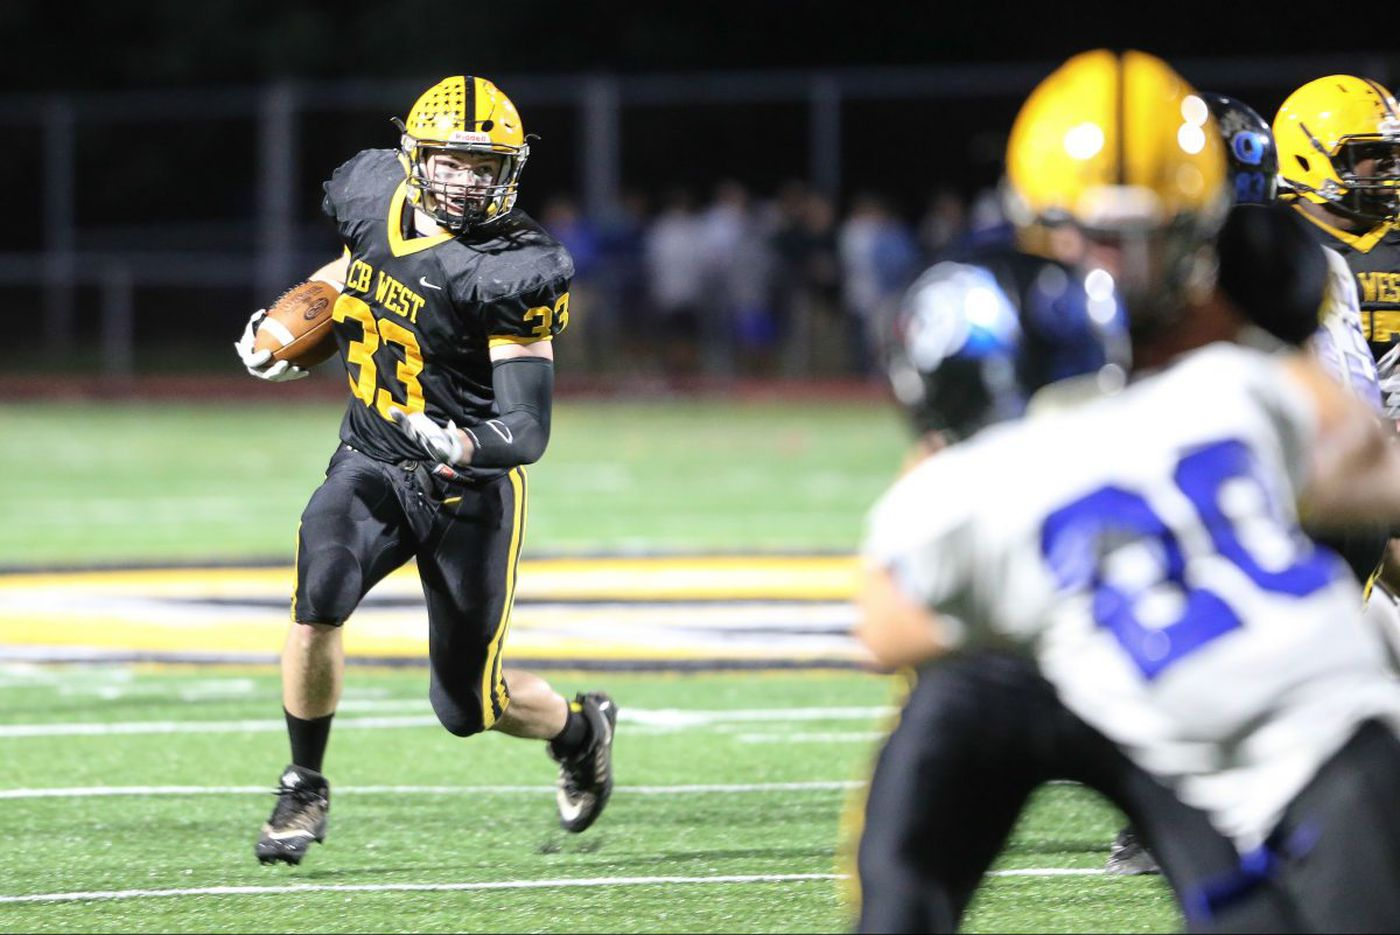 Bucks-Mont Lions Club all-star football game set for Friday